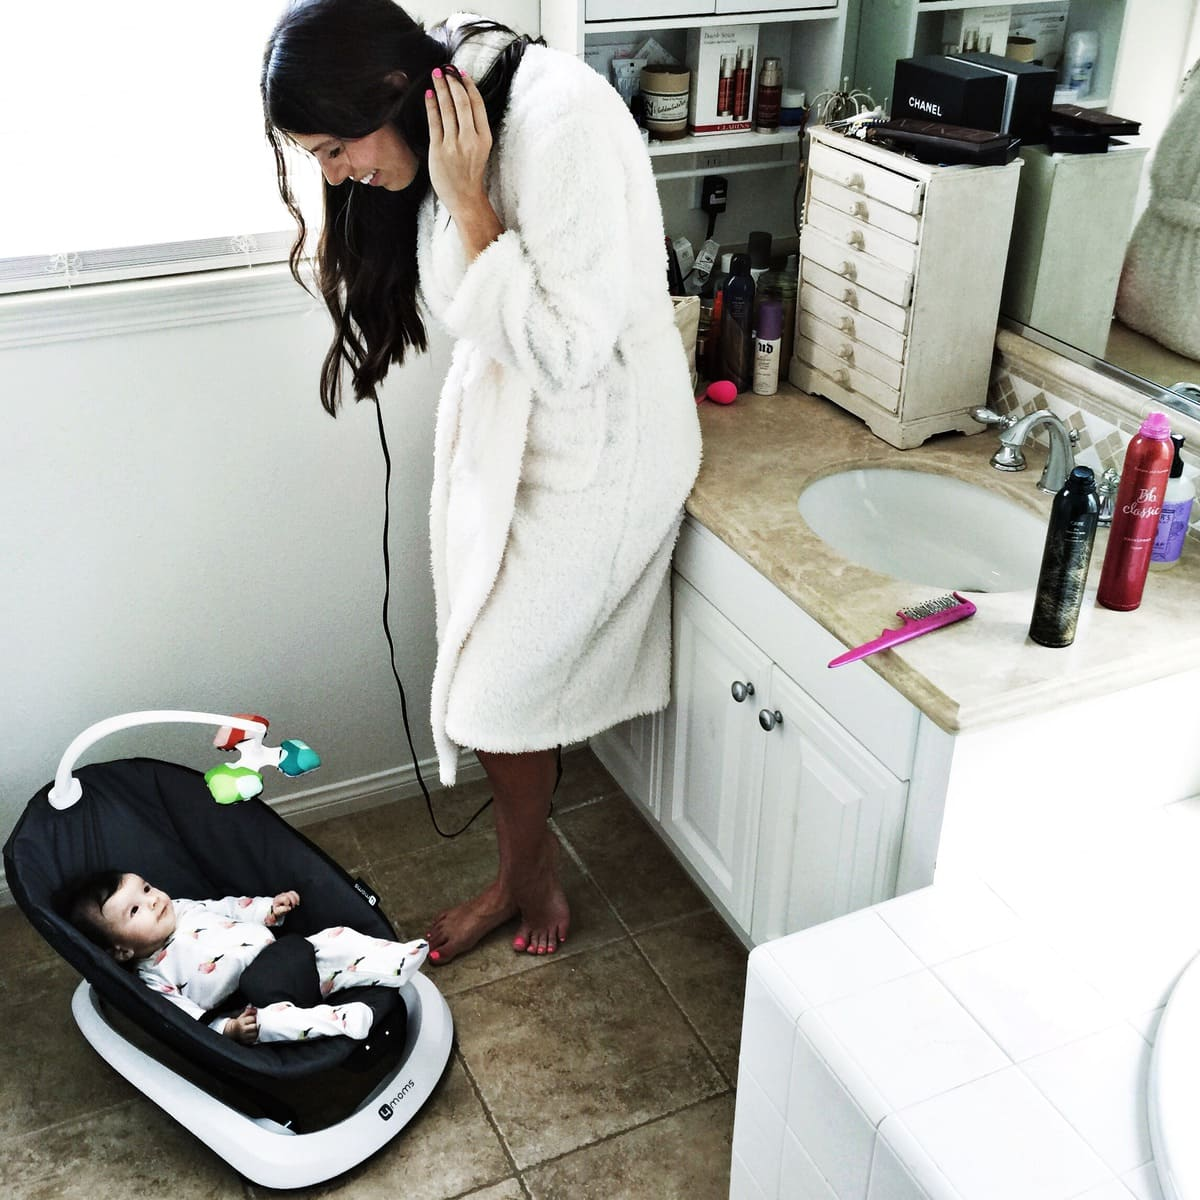 4moms Bounceroo Review The Best Baby Accessory For A